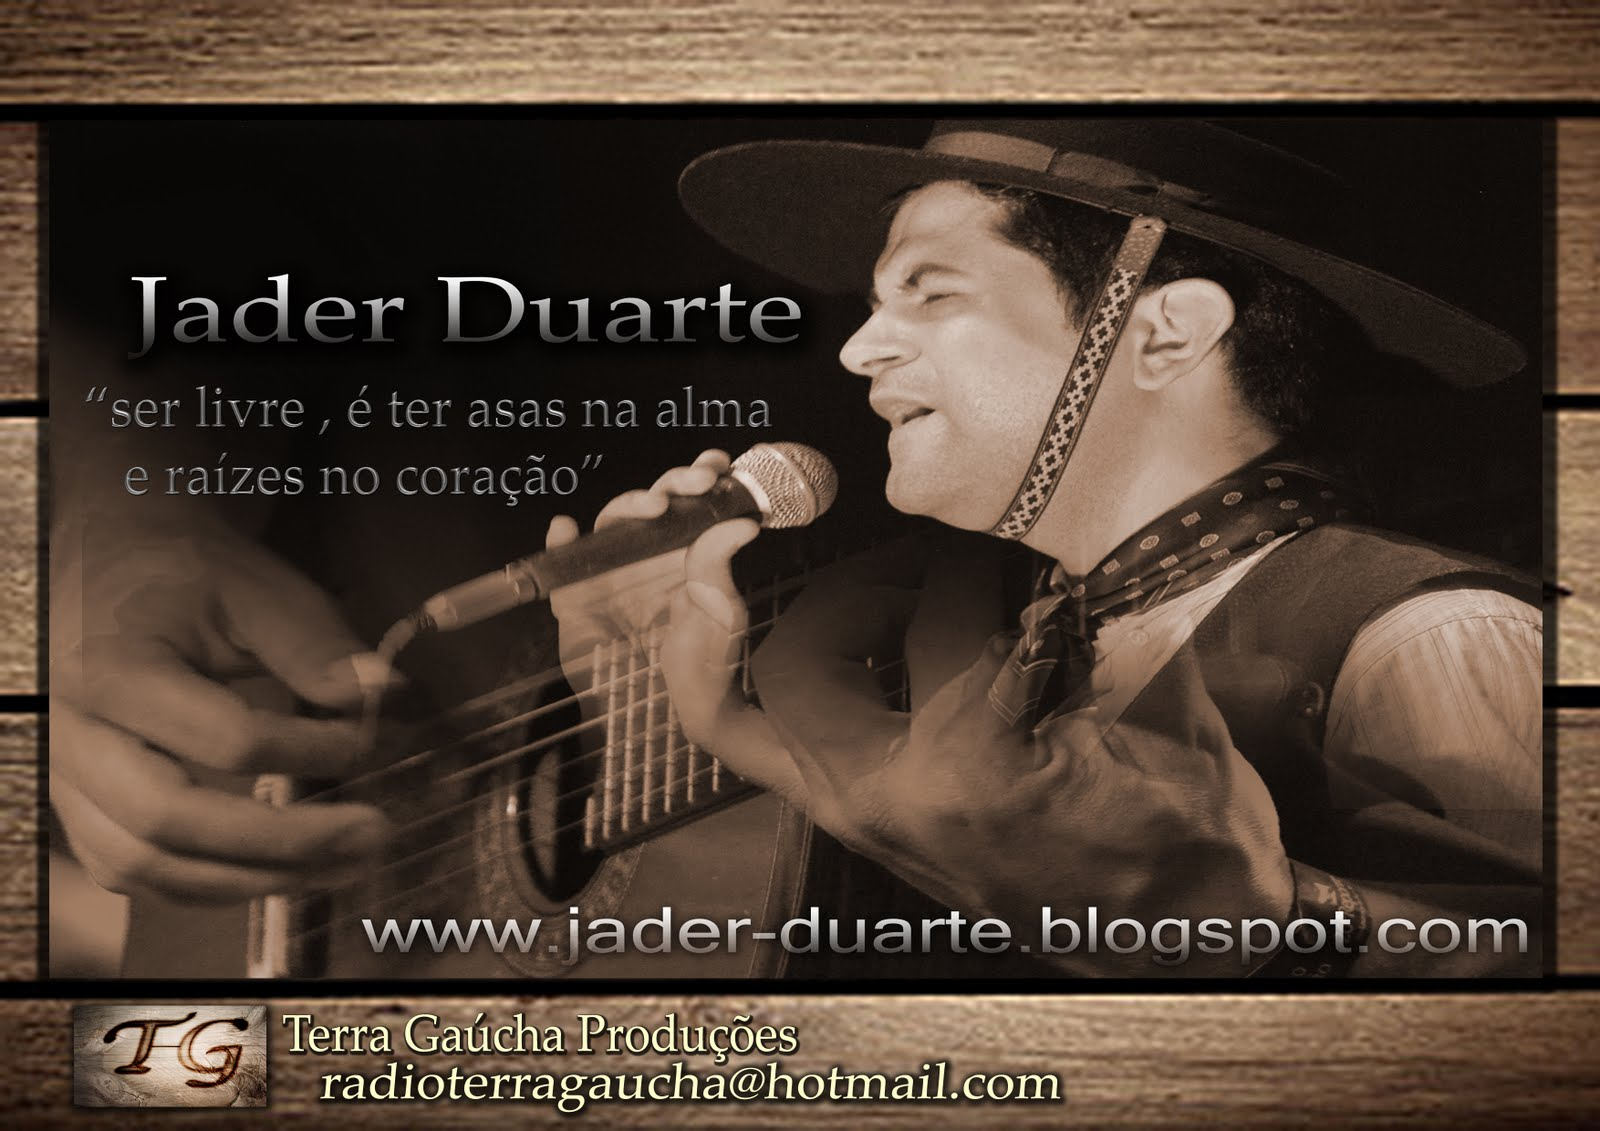 Blog do Jader Duarte